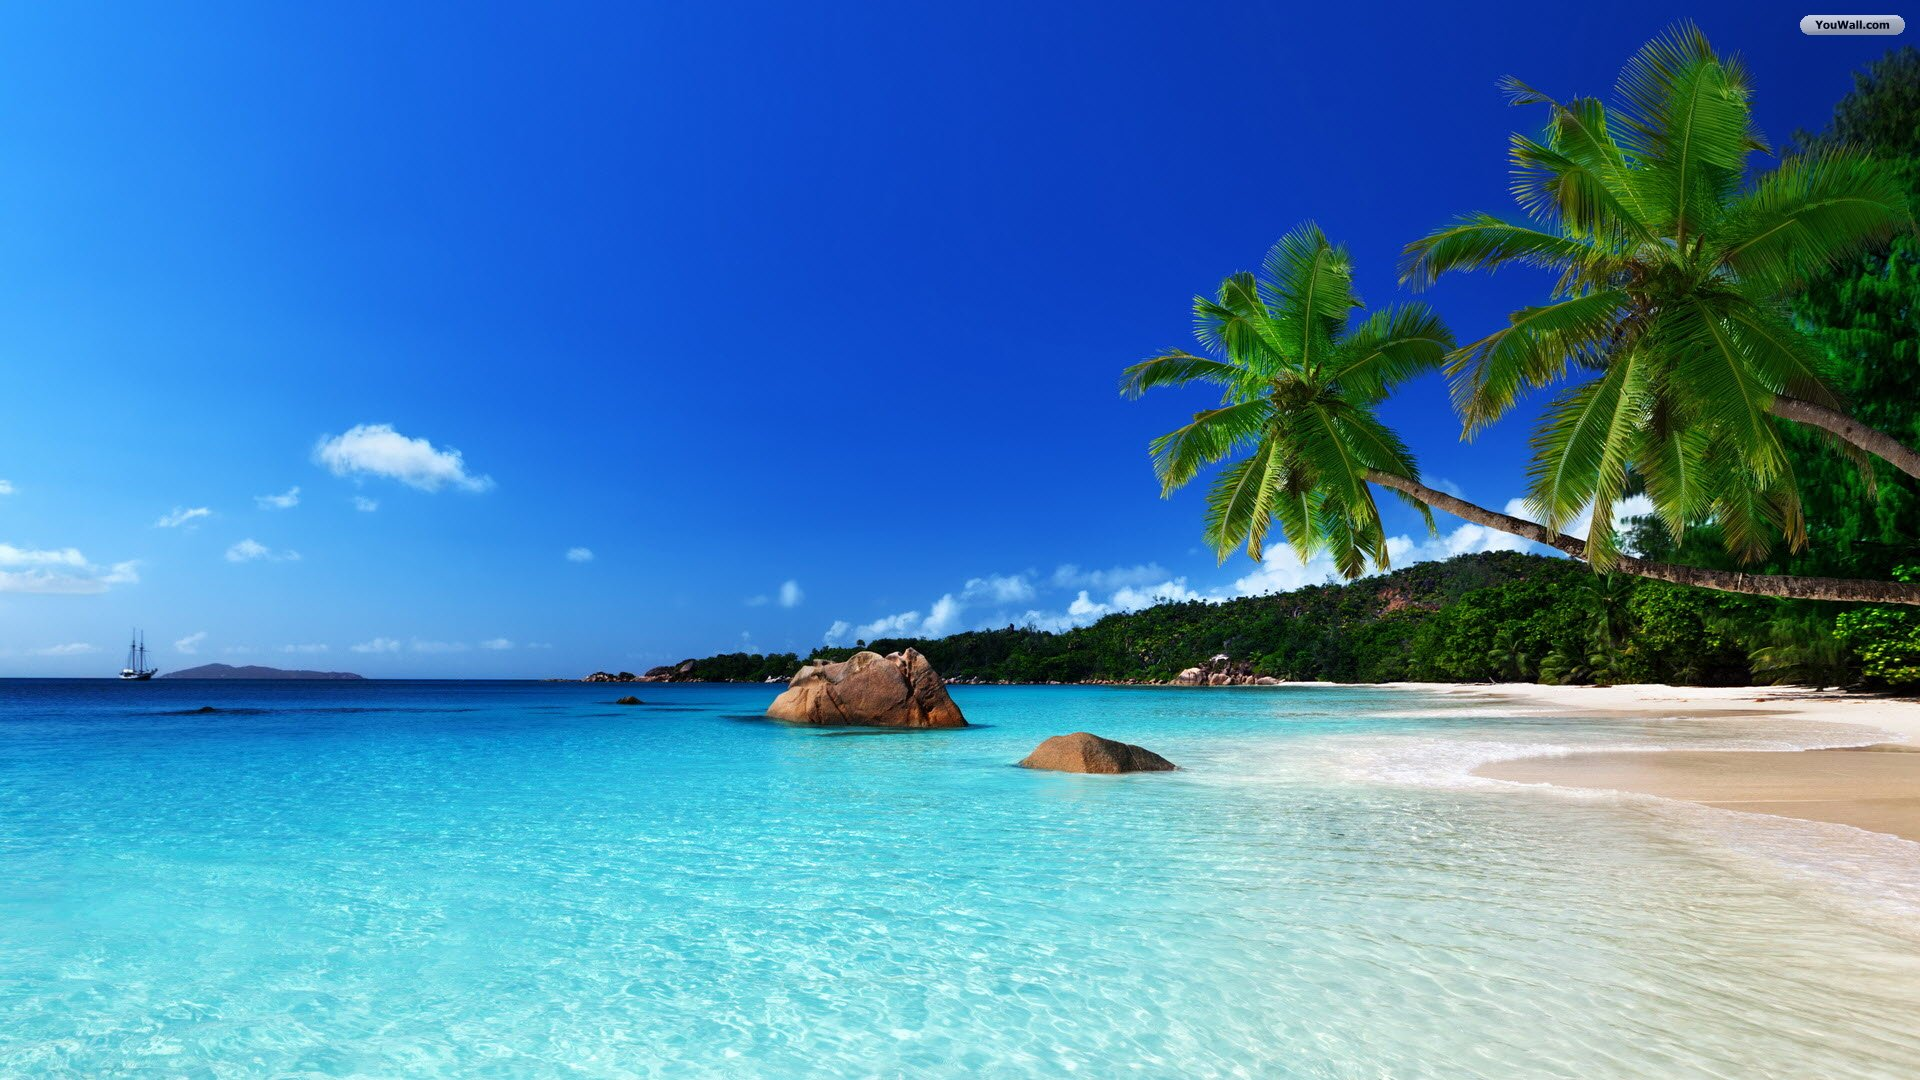 Tropical Beach Desktop Wallpapers Group (83+)